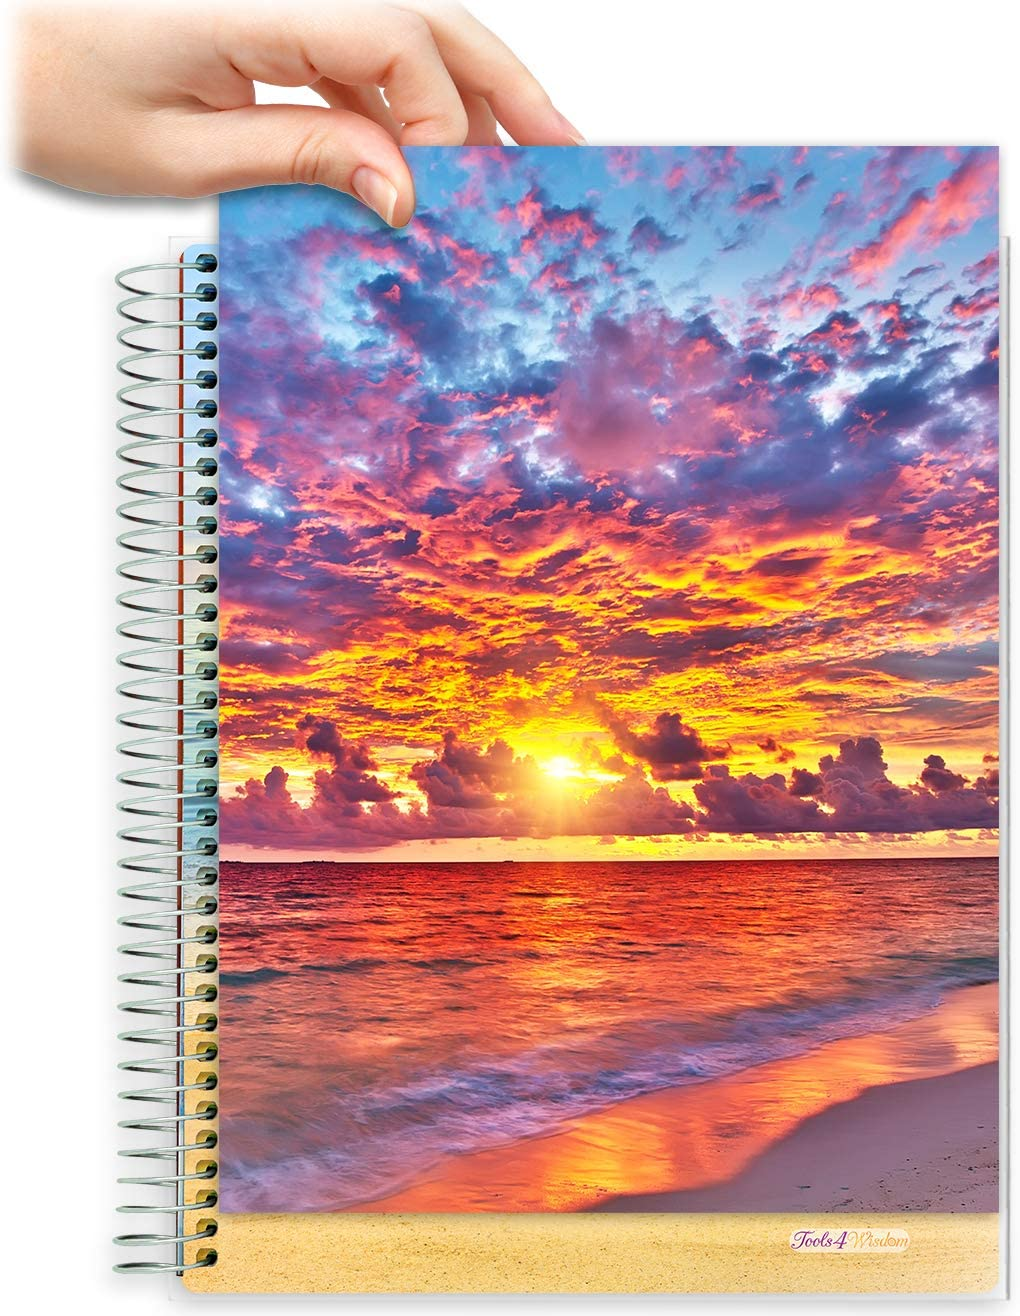 8.5x11 Customizable Softcover Planner • April 2021 to June 2022 Academic Year •  Warm Sunset